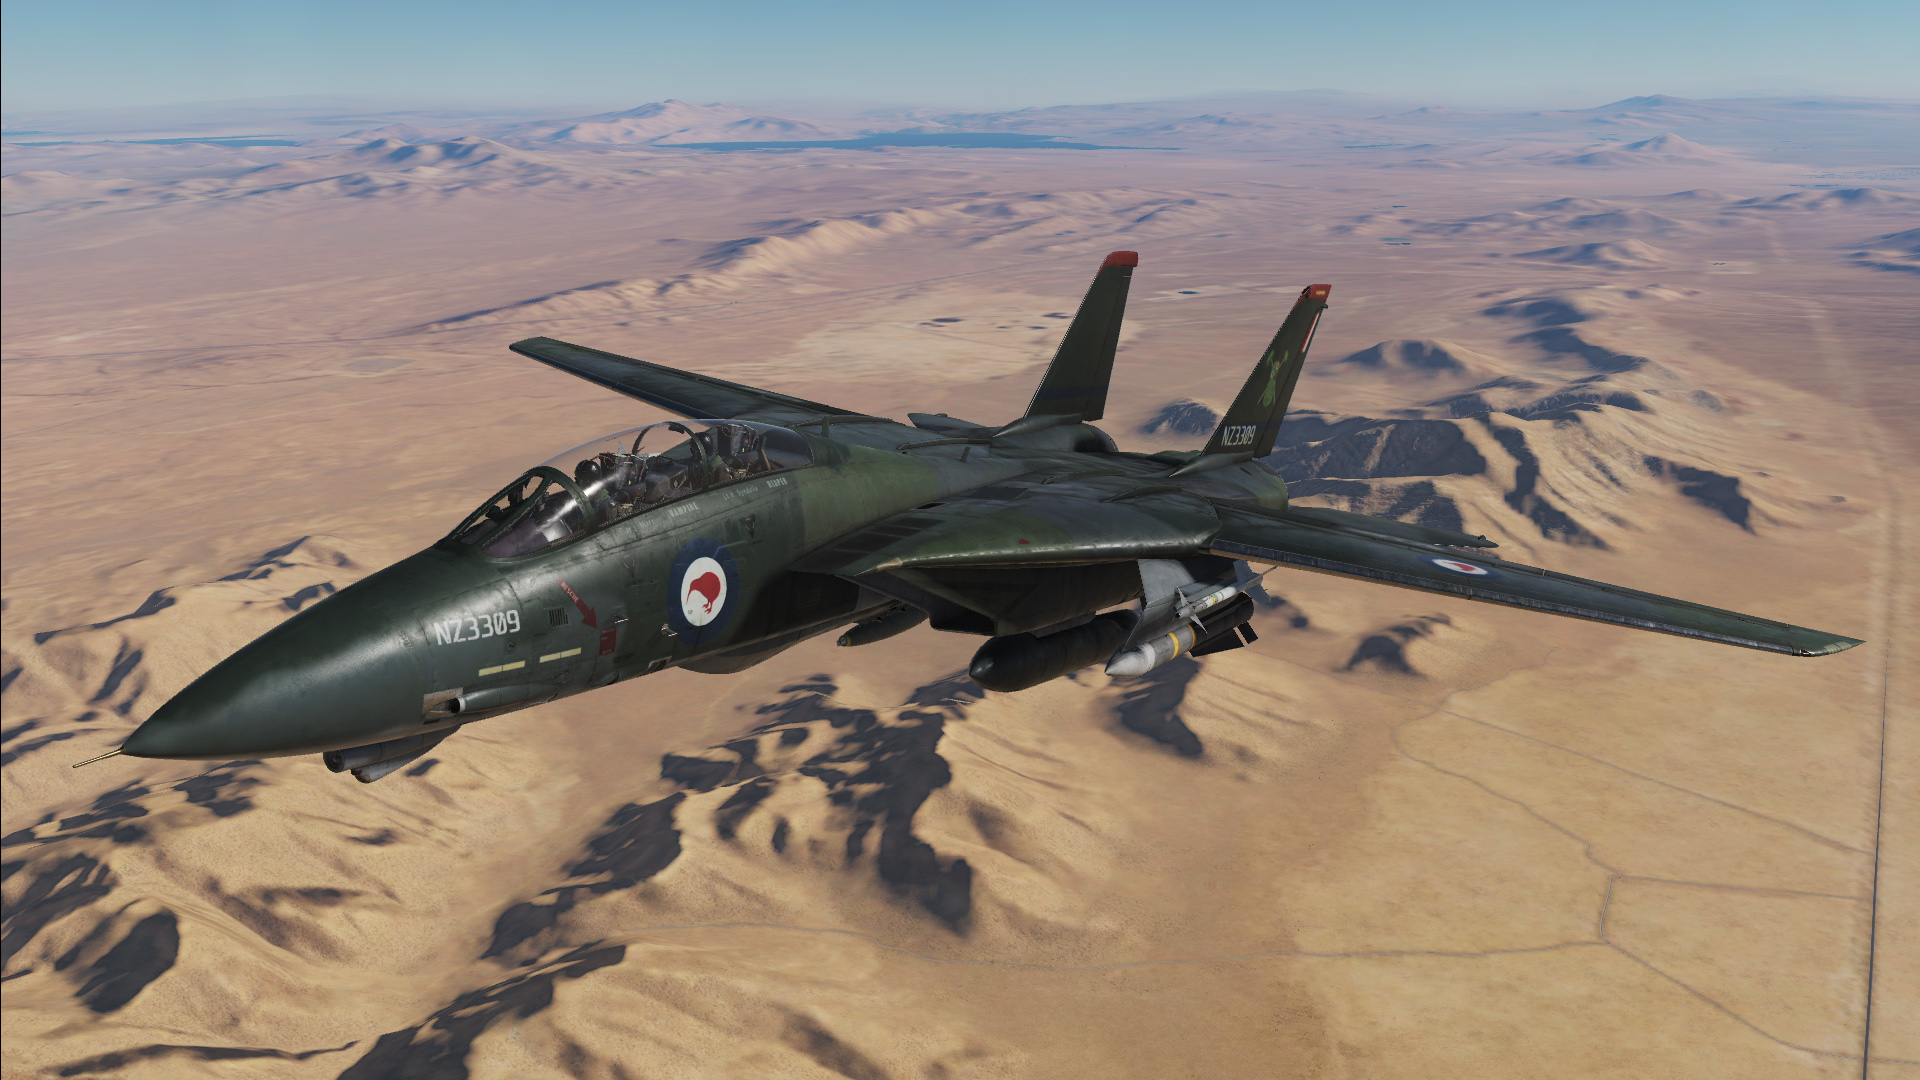 Fictional RNZAF (Royal New Zealand Airforce) F-14B - 75 Squadron